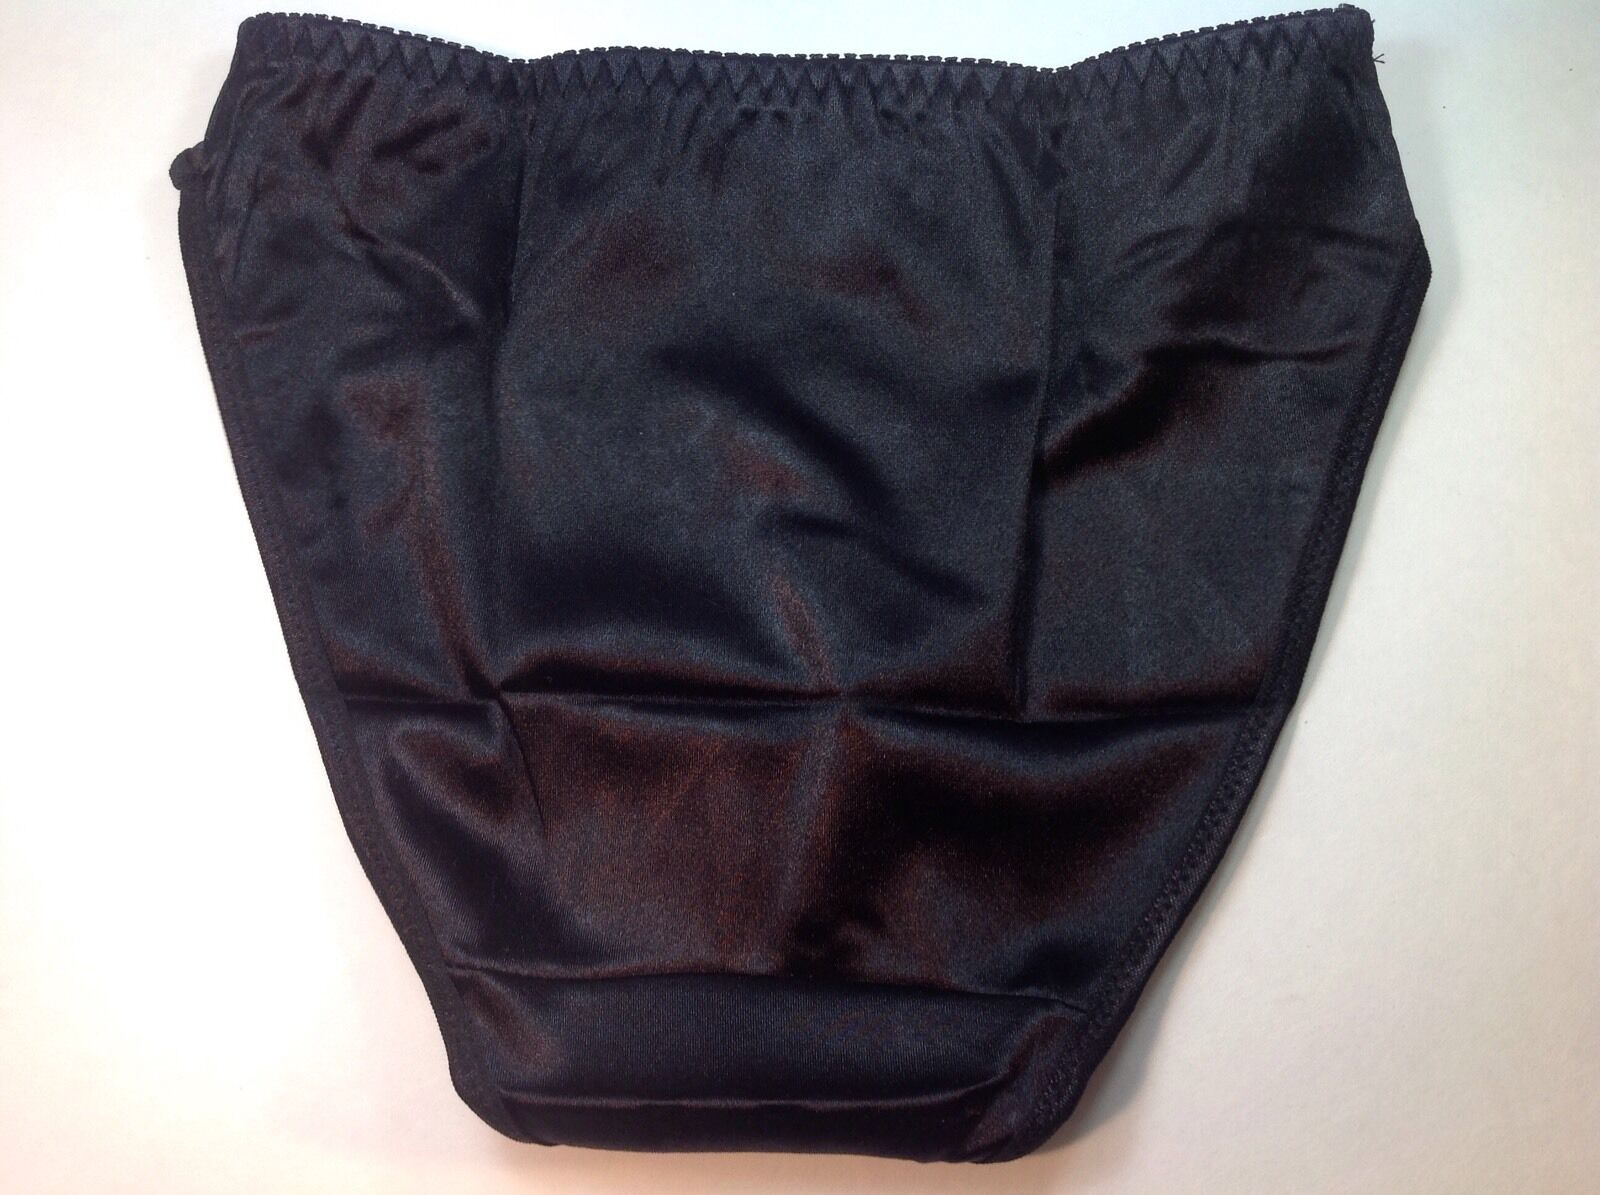 "Women Panties,Bikinis ""Eva Cervantes"" Size M. Black Satin Floral W/decoration"